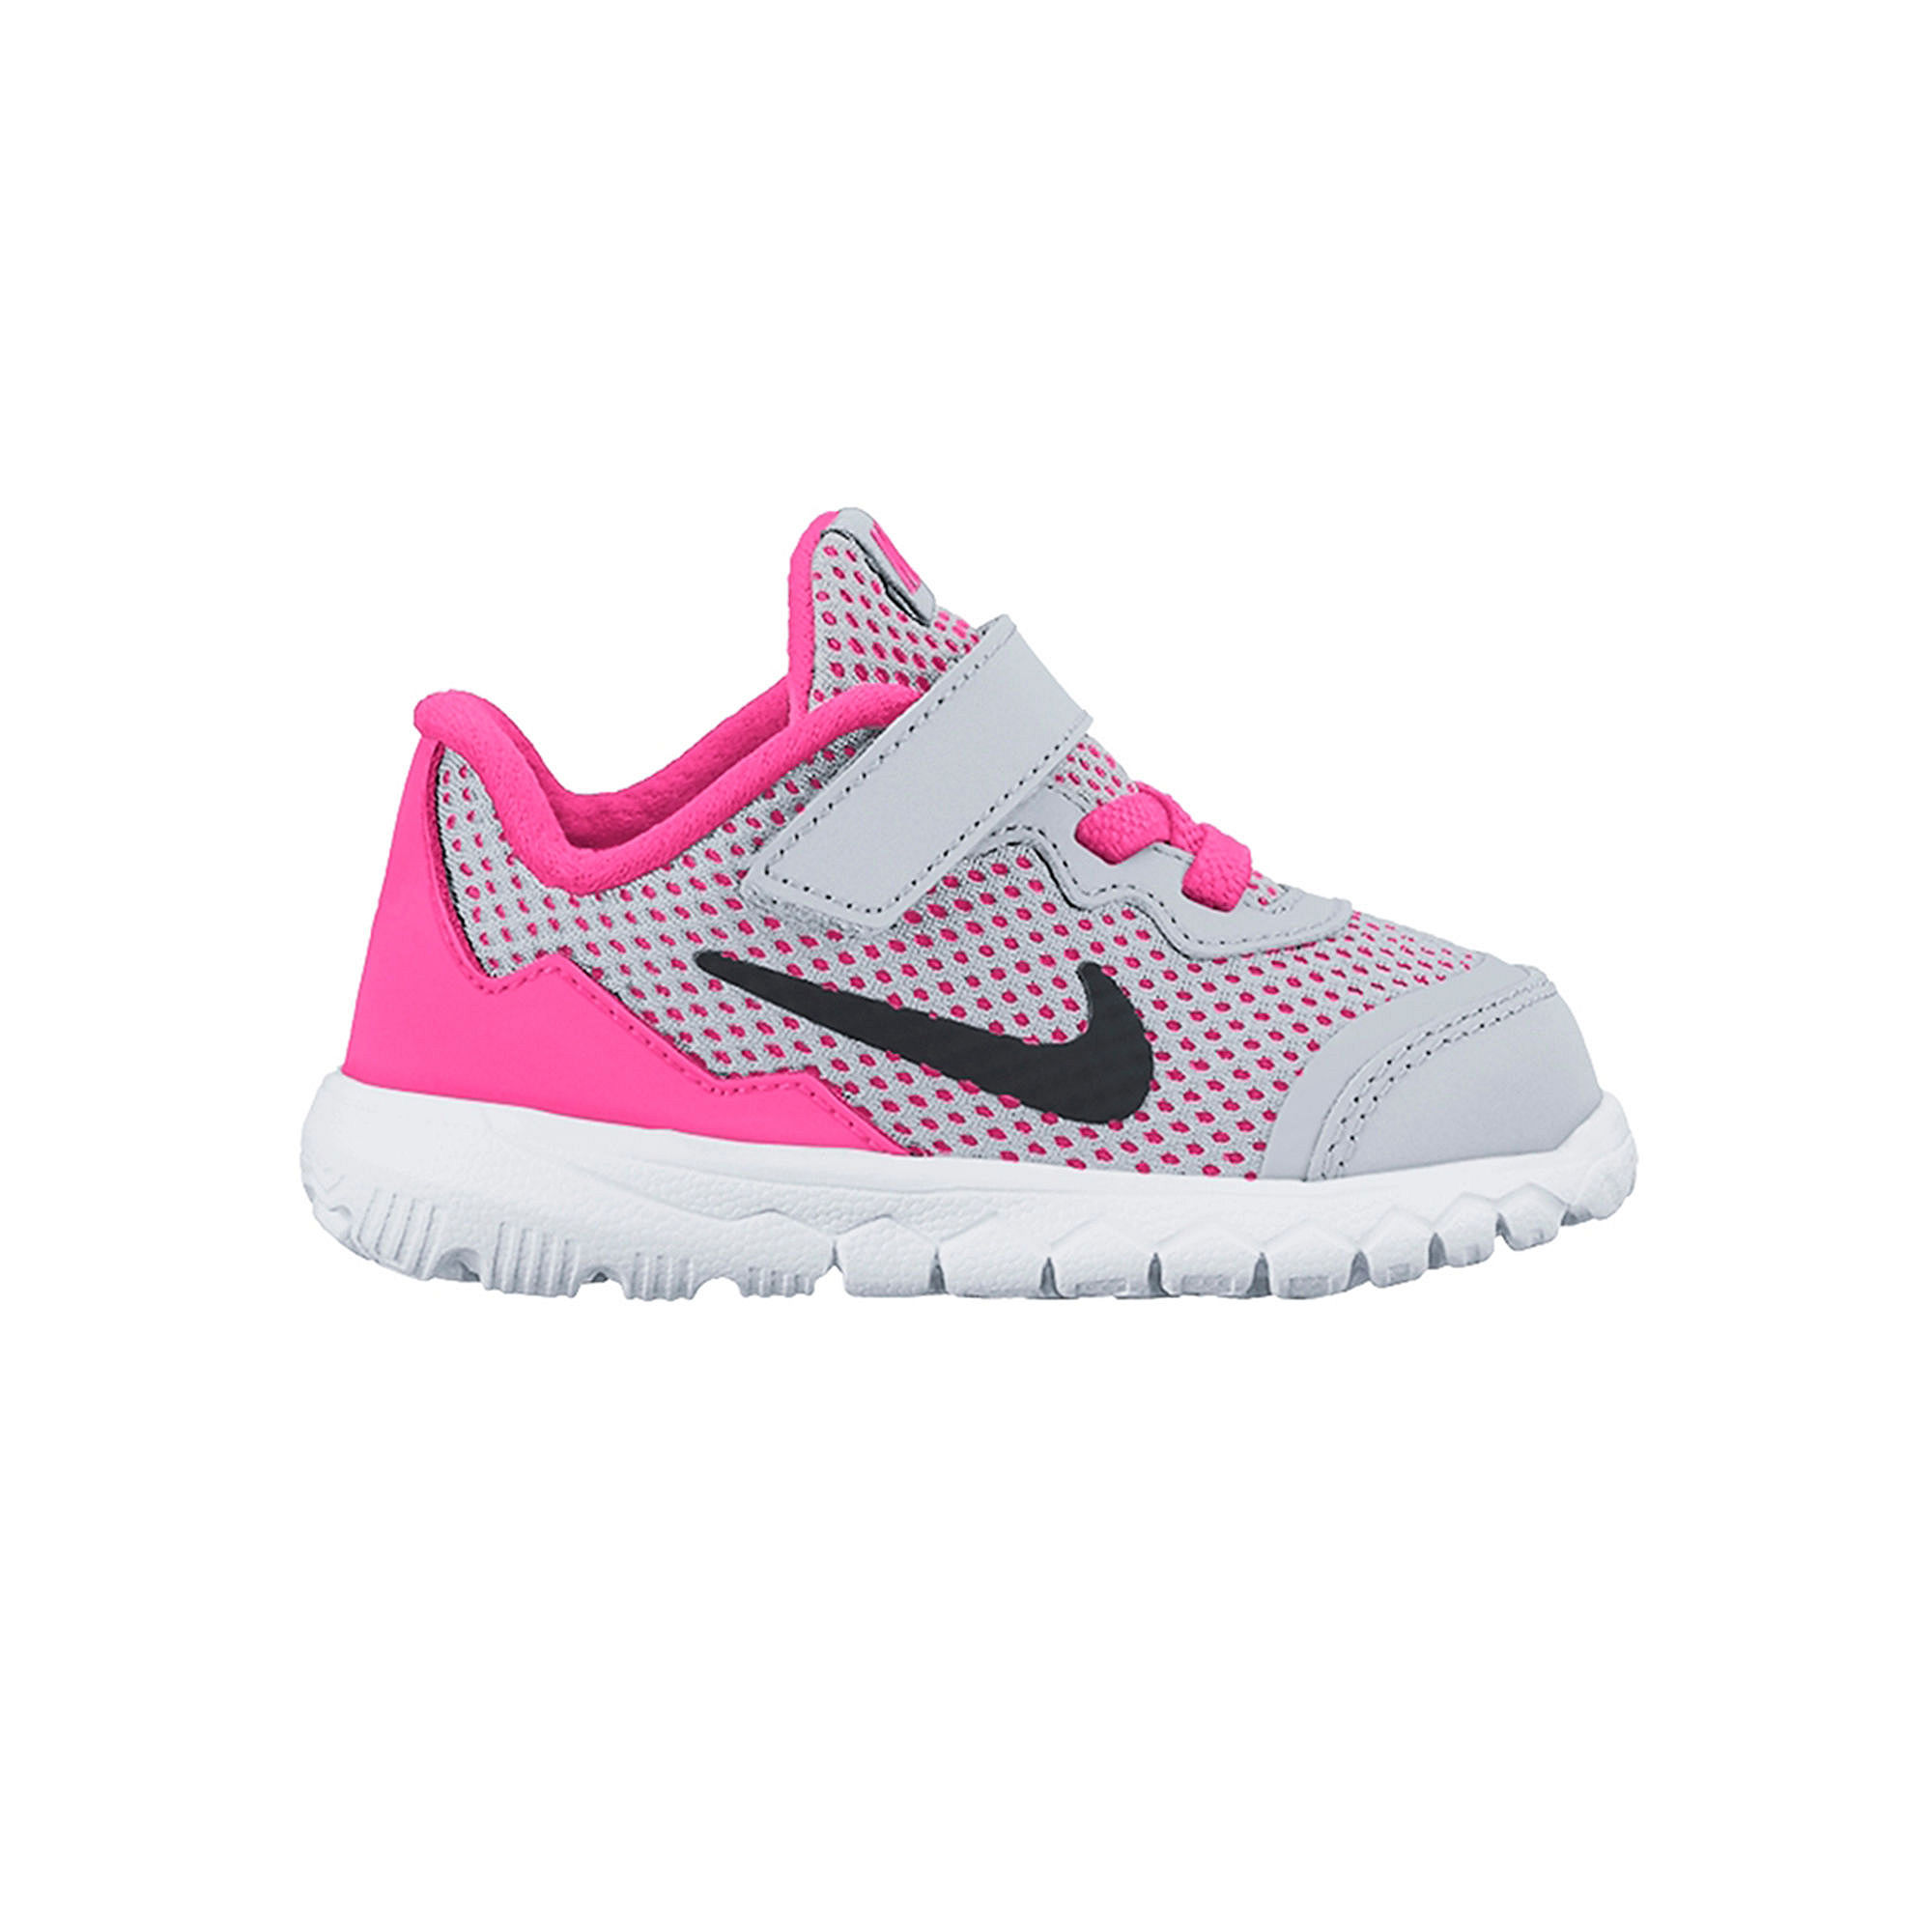 ca1ed7be09a9a UPC 888410289136. ZOOM. UPC 888410289136 has following Product Name  Variations  Toddler Girl s Nike  Flex Experience 4  Print ...